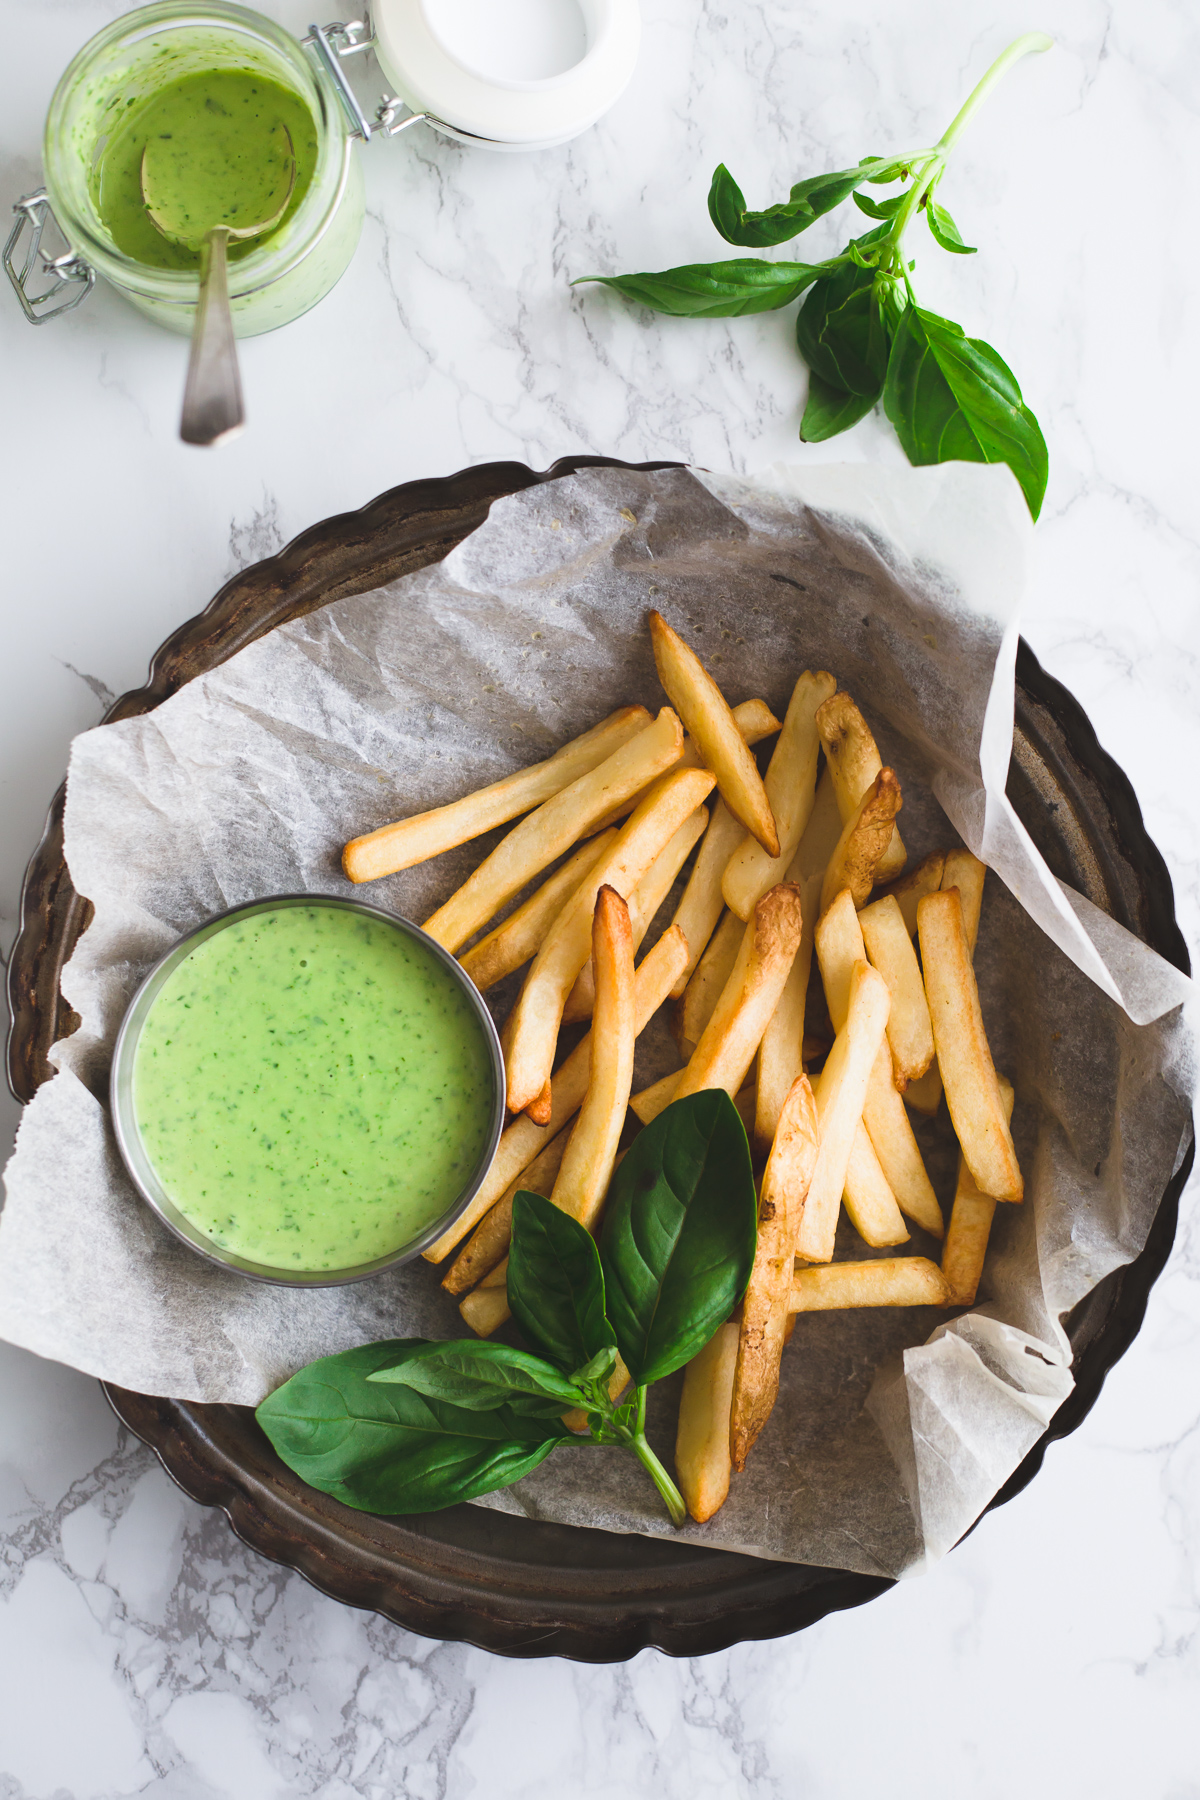 Vegan Pesto Aioli Recipe With Aquafaba Mayonnaise Simple Healthy Delicious #aioli #aquafaba #mayonnaise #vegan #pesto #dairyfree #simple #chickpea #cheap #easy #basil #pinenuts